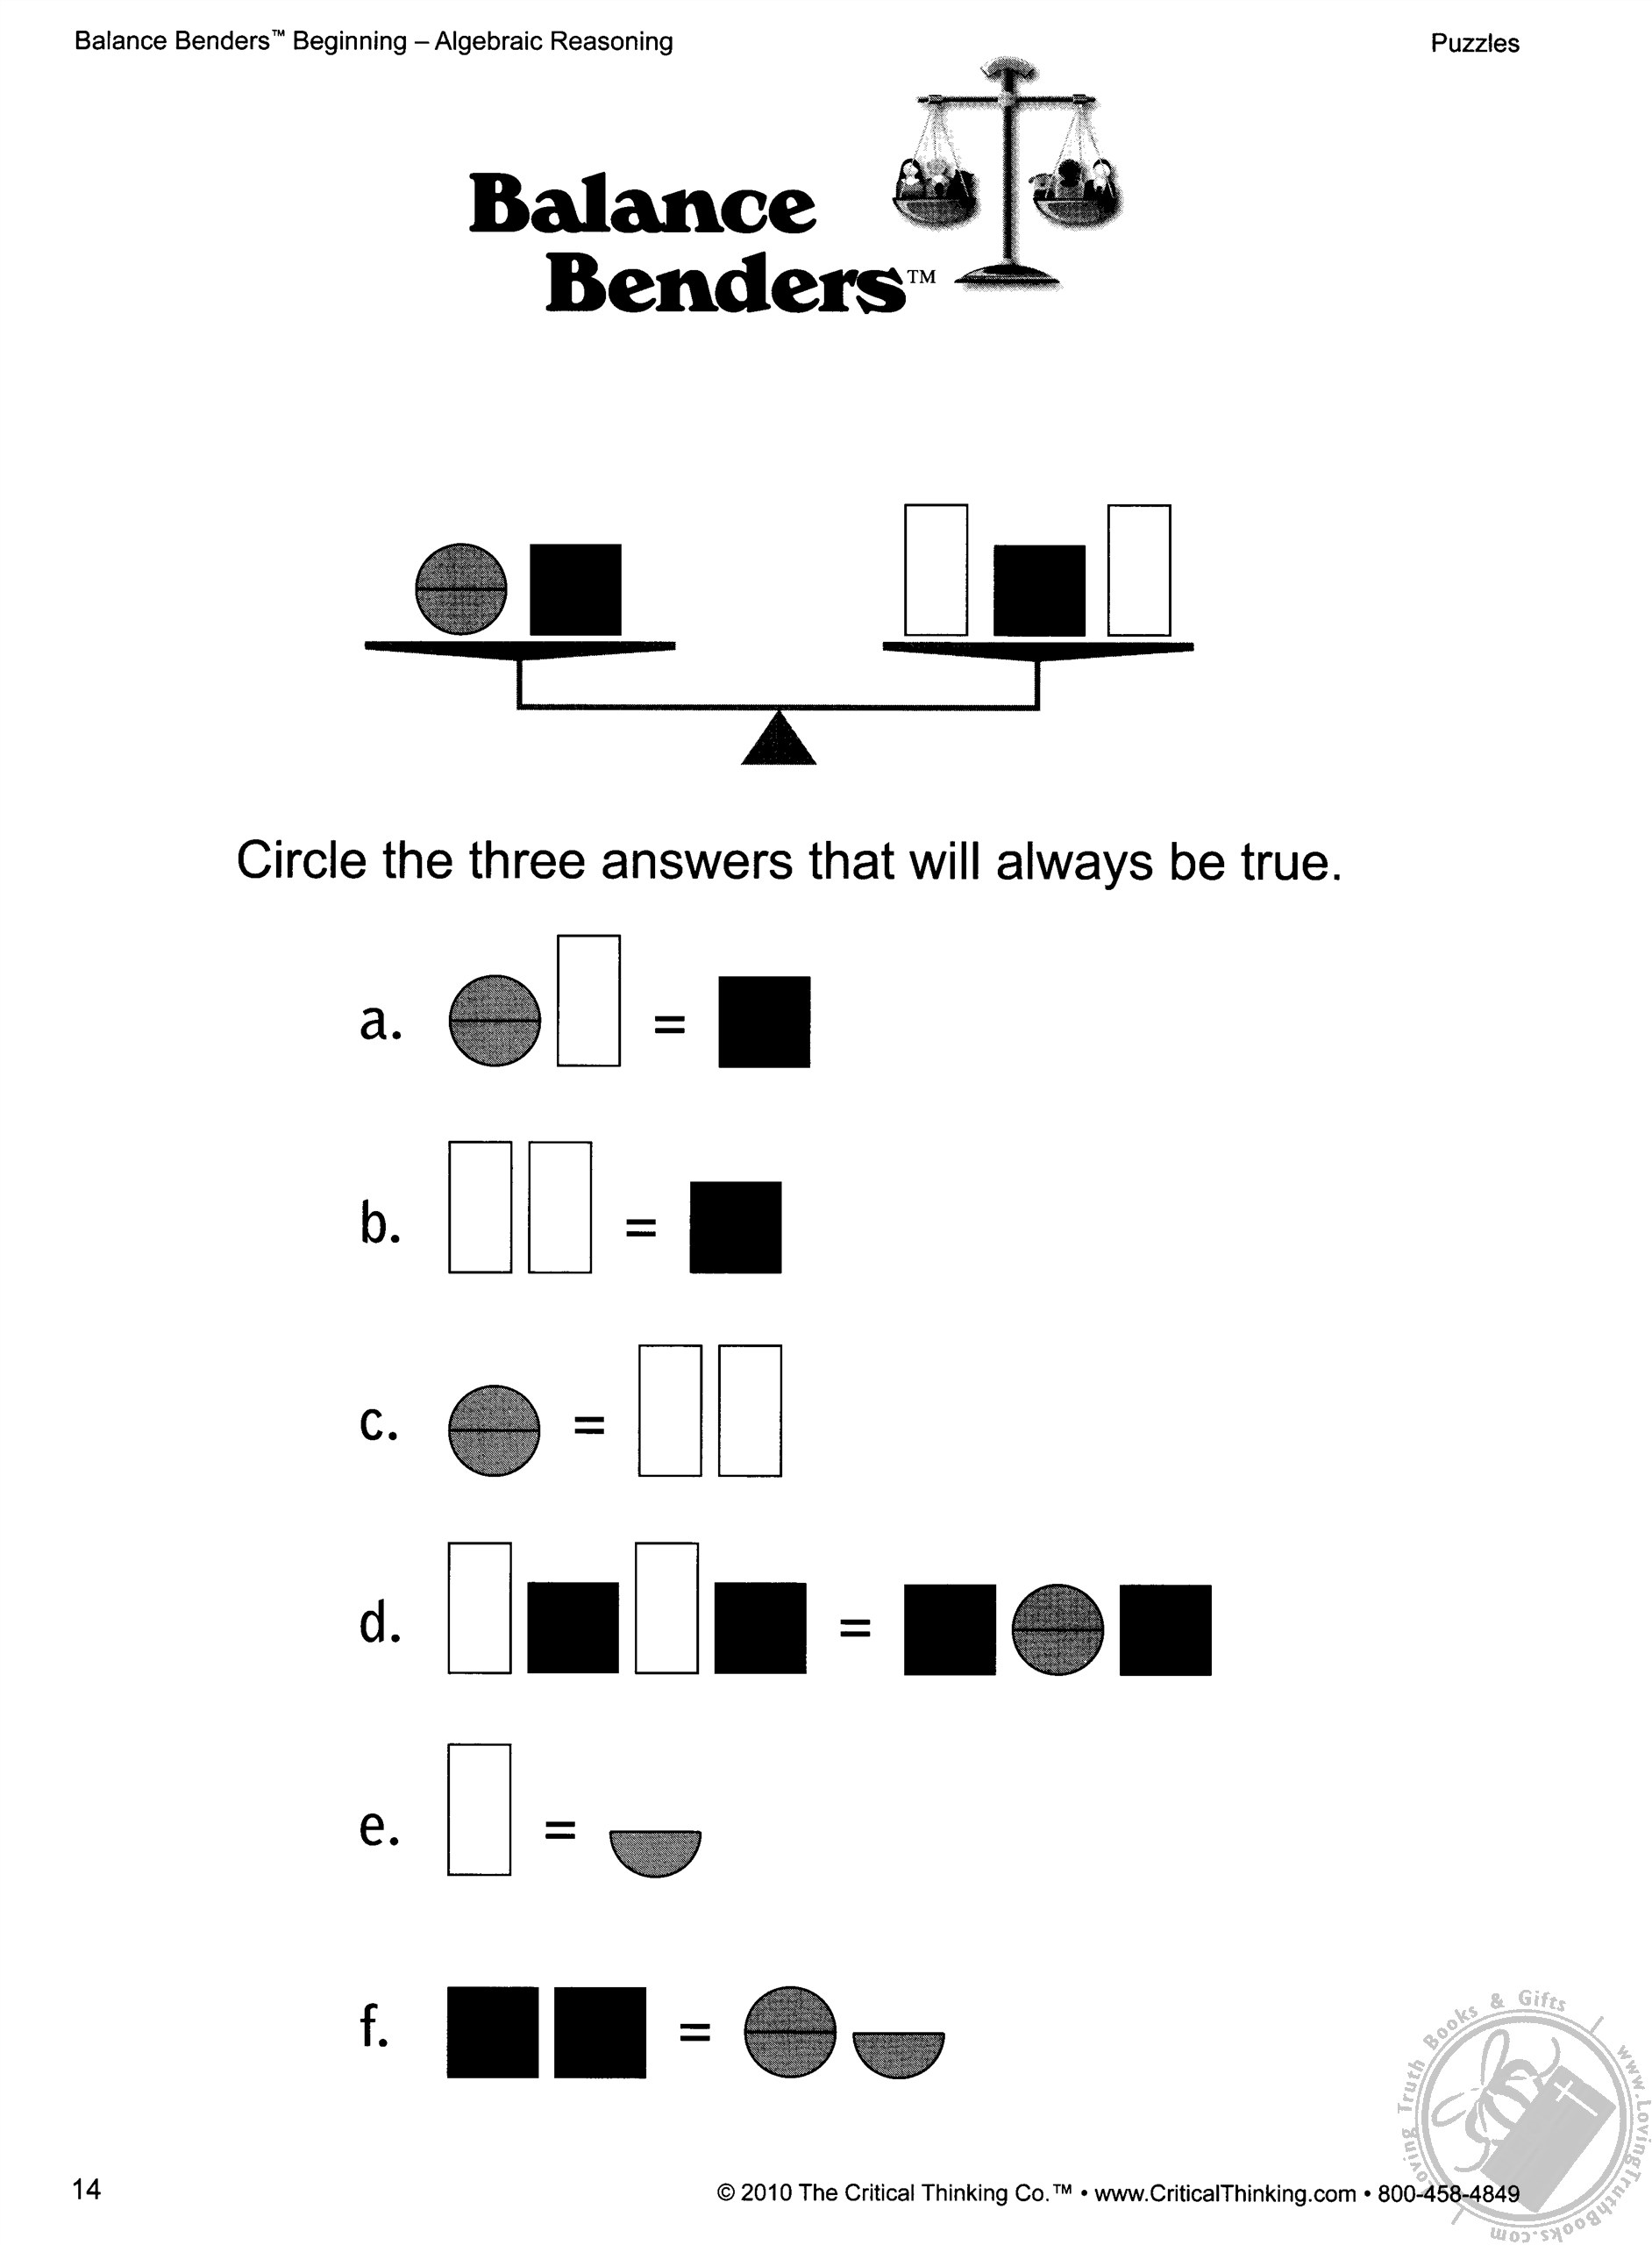 Balance Benders Beginning Level: Logic and Algebraic